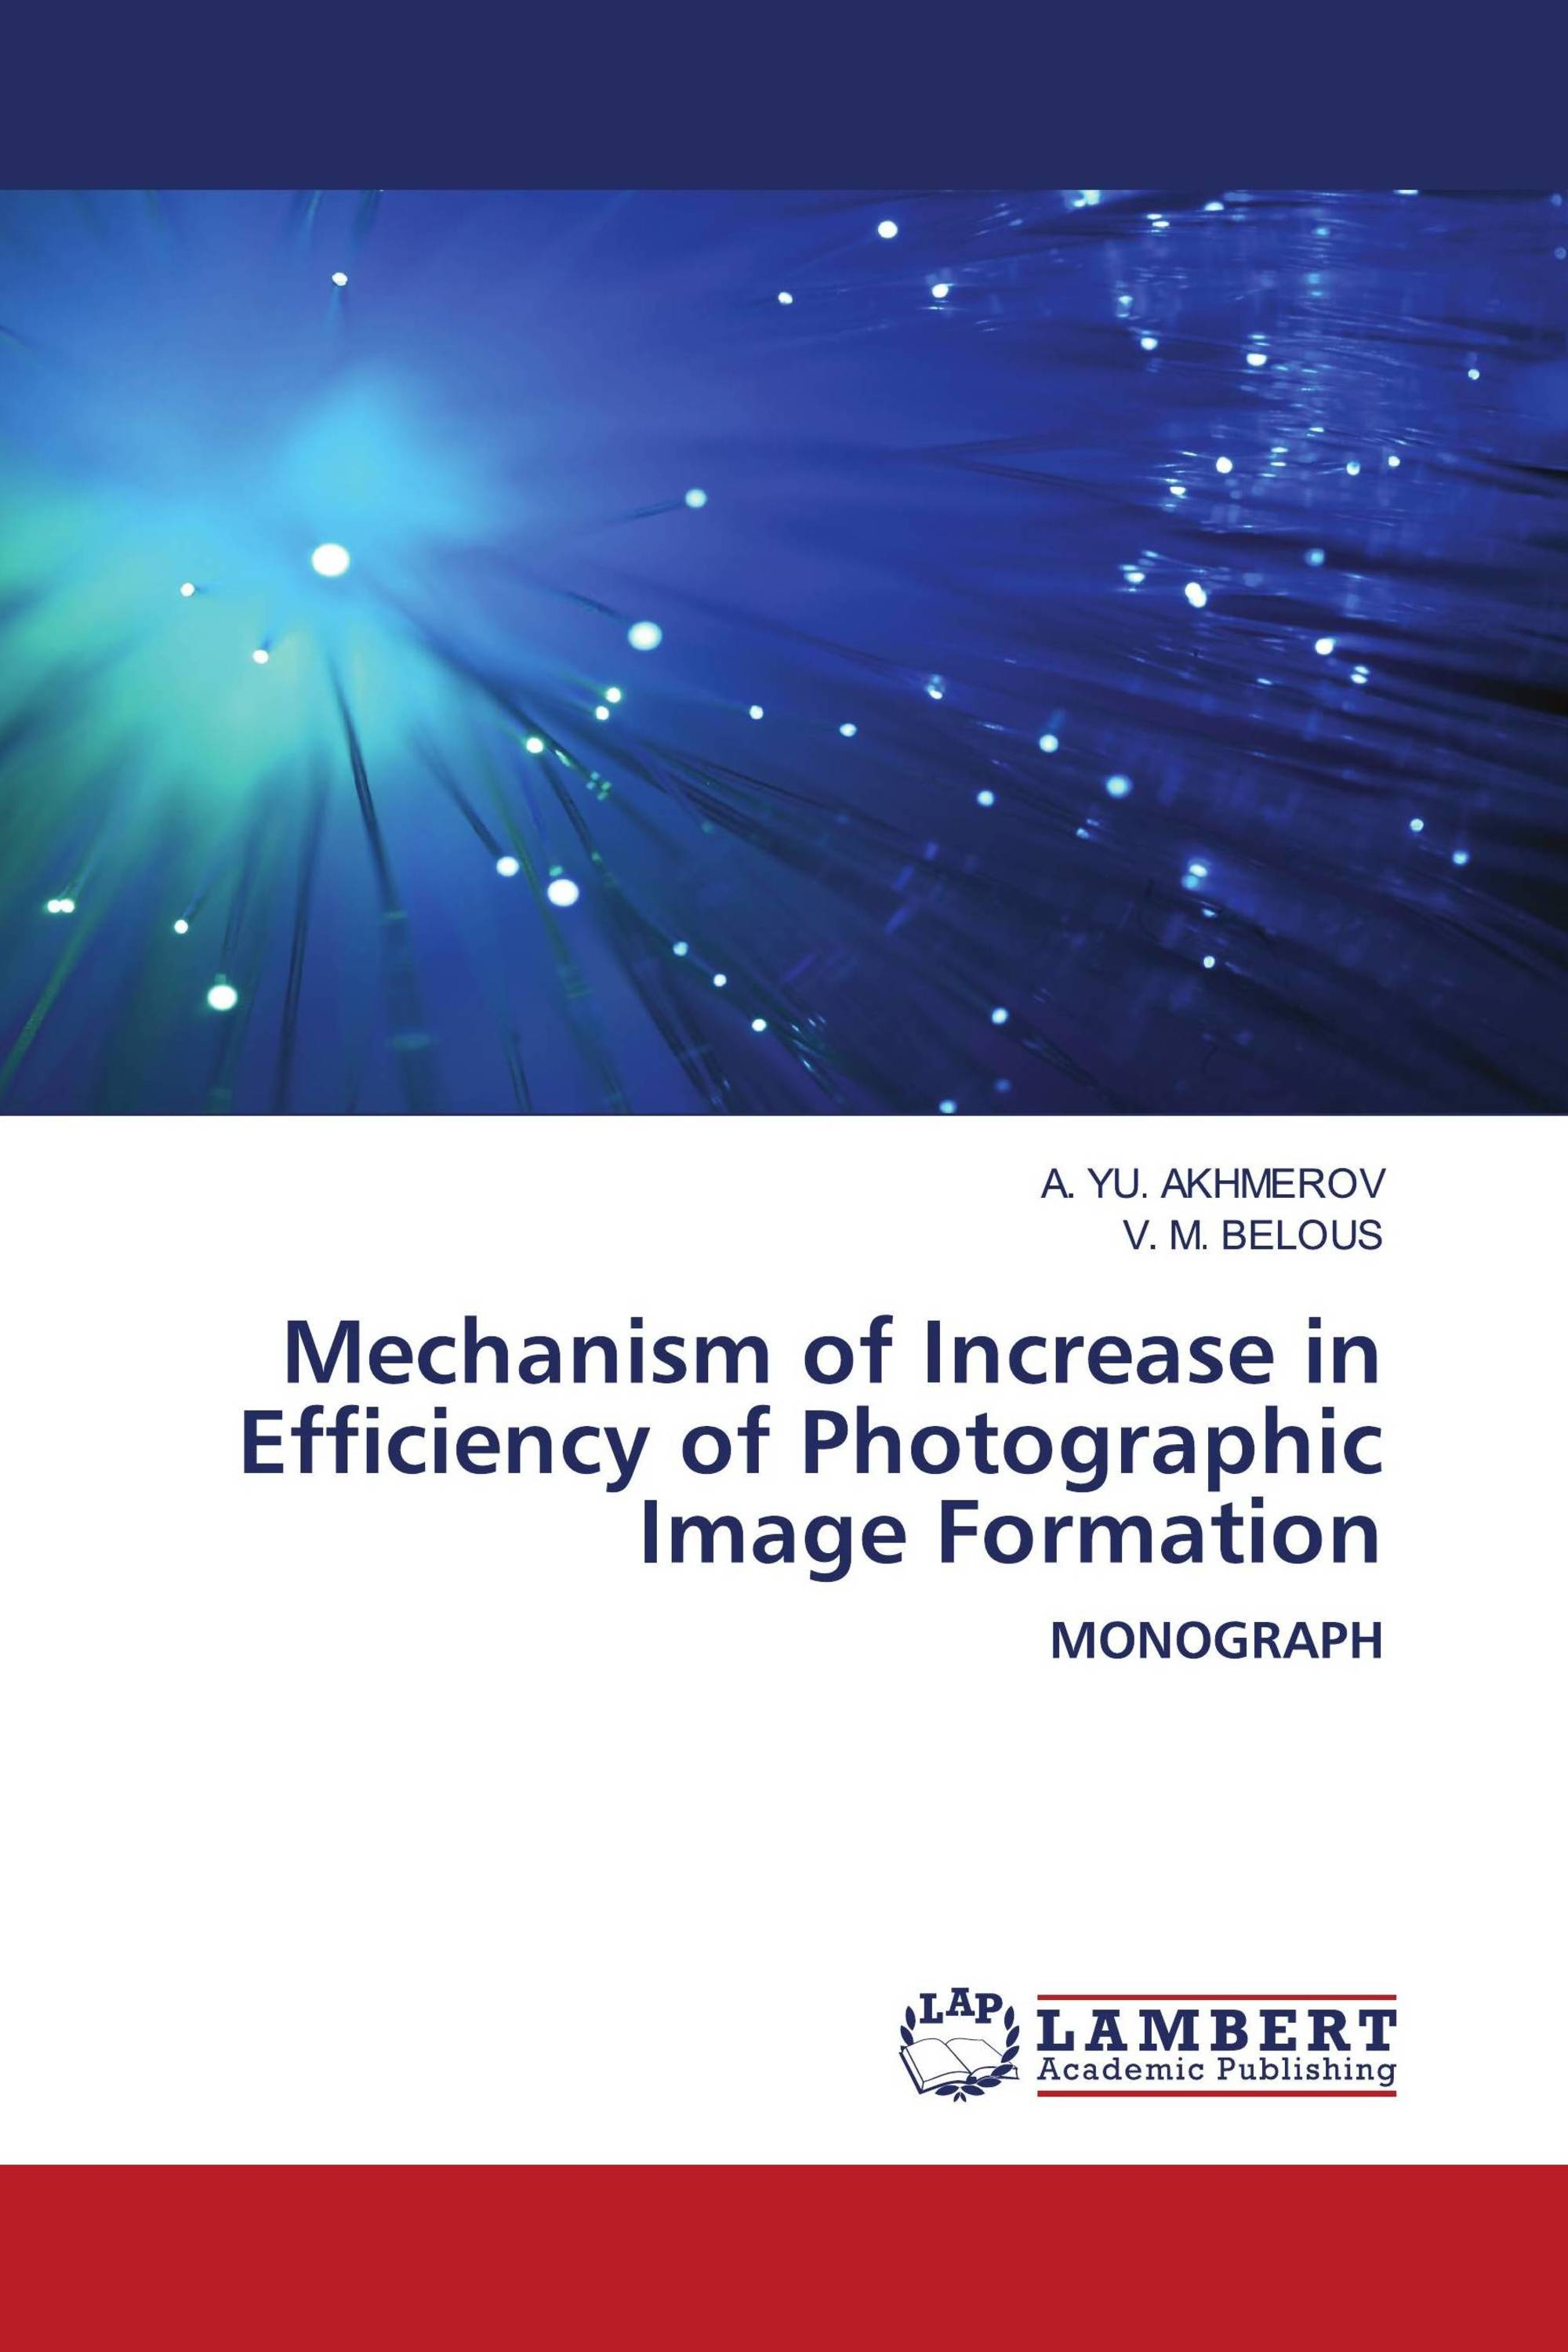 Mechanism of Increase in Efficiency of Photographic Image Formation